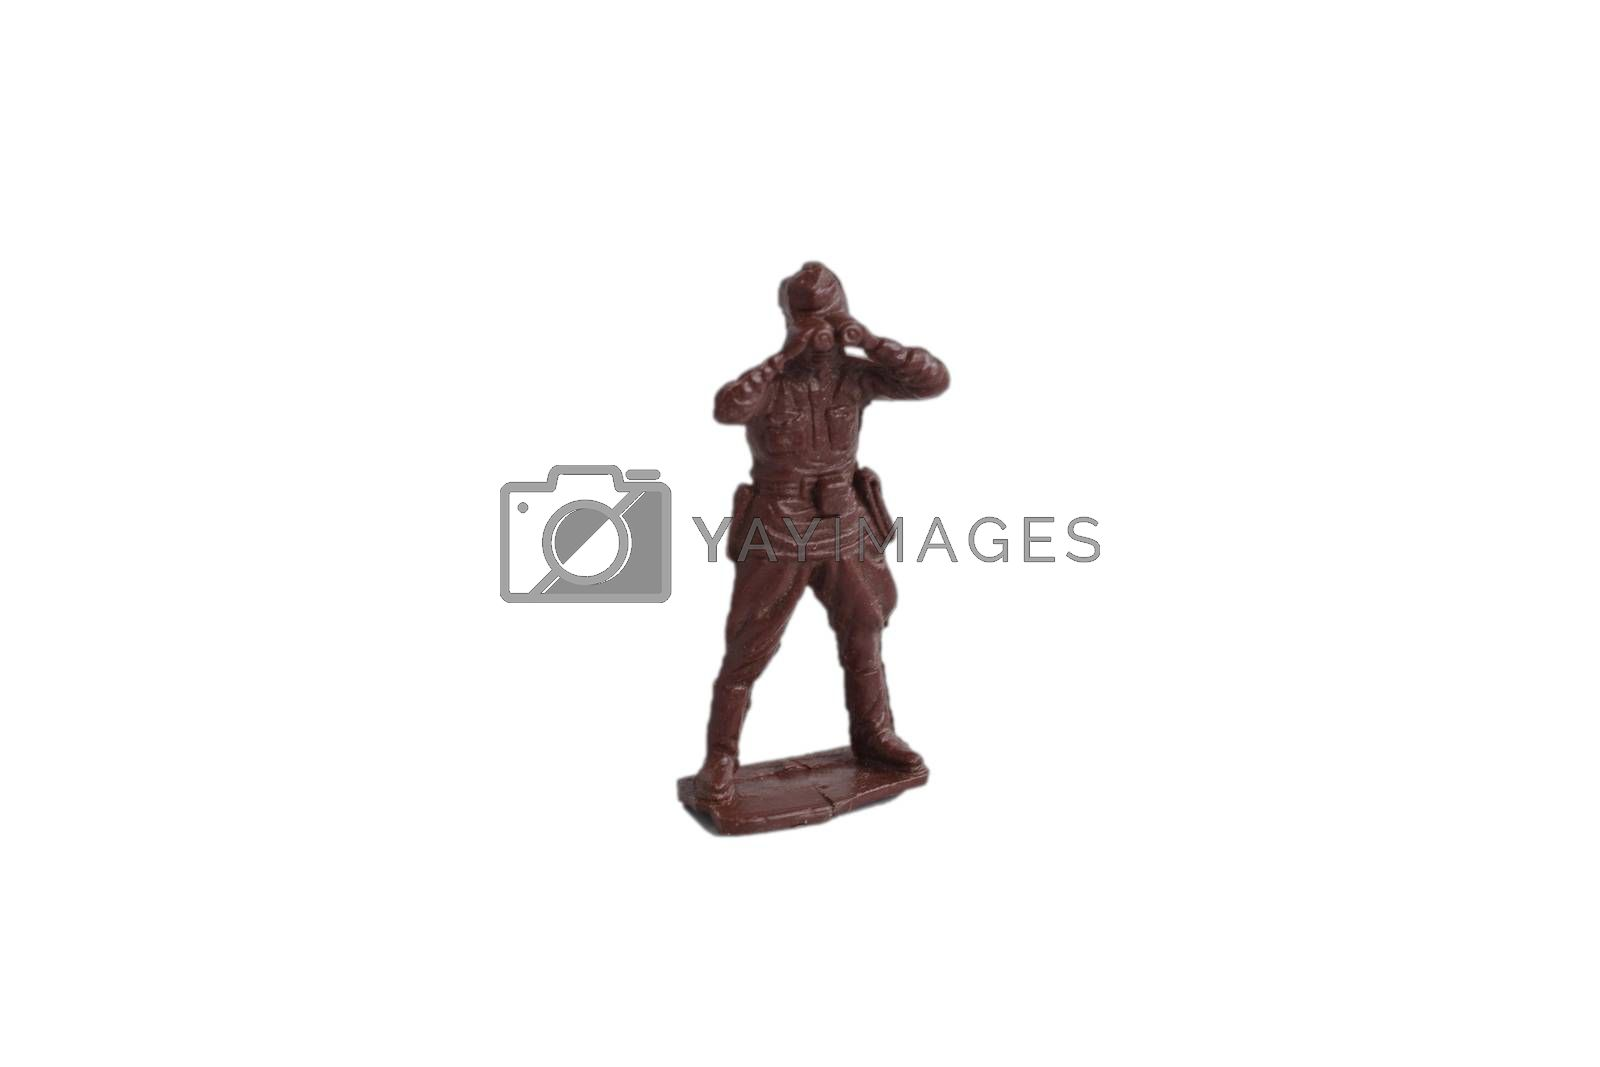 Toy soldiers isolated on white background. Old vintage toy soldiers